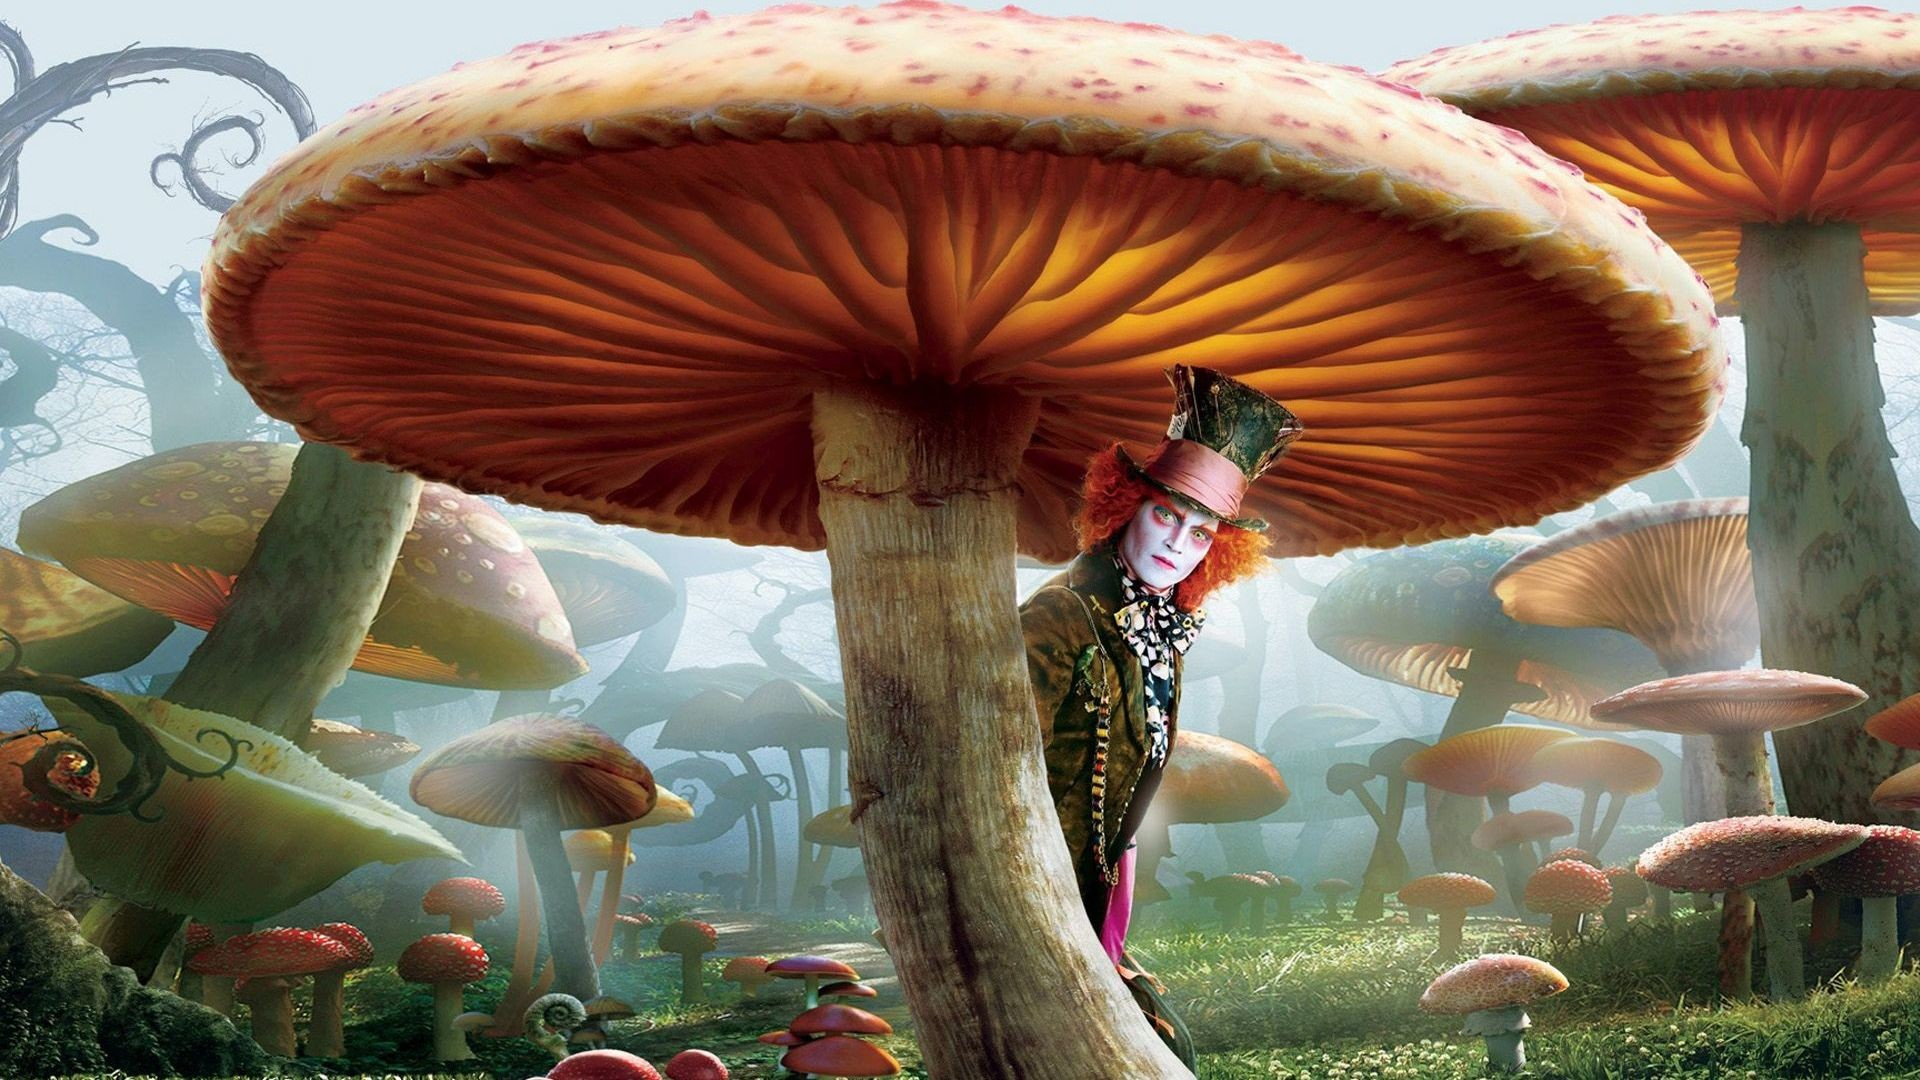 1920x1080 Mad Hatter - Alice in Wonderland HD Wallpaper  Mad ...